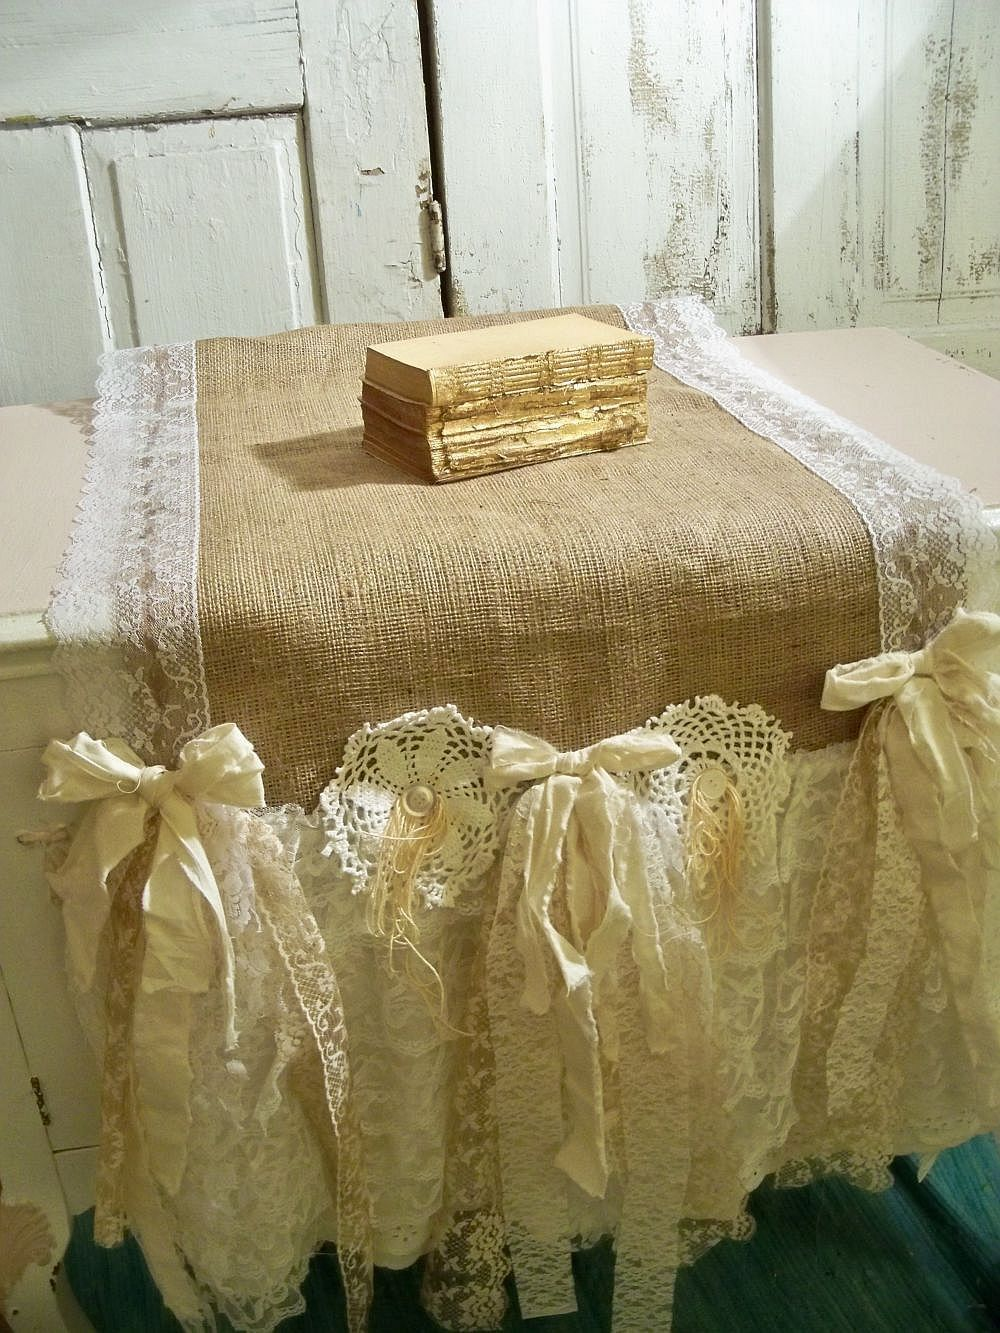 Shabby Chic Table Runner Burlap Fabric Recycled Muslin Lace French  Farmhouse Inspired Linen Ooak Anita Spero. $115.00, Via Etsy.